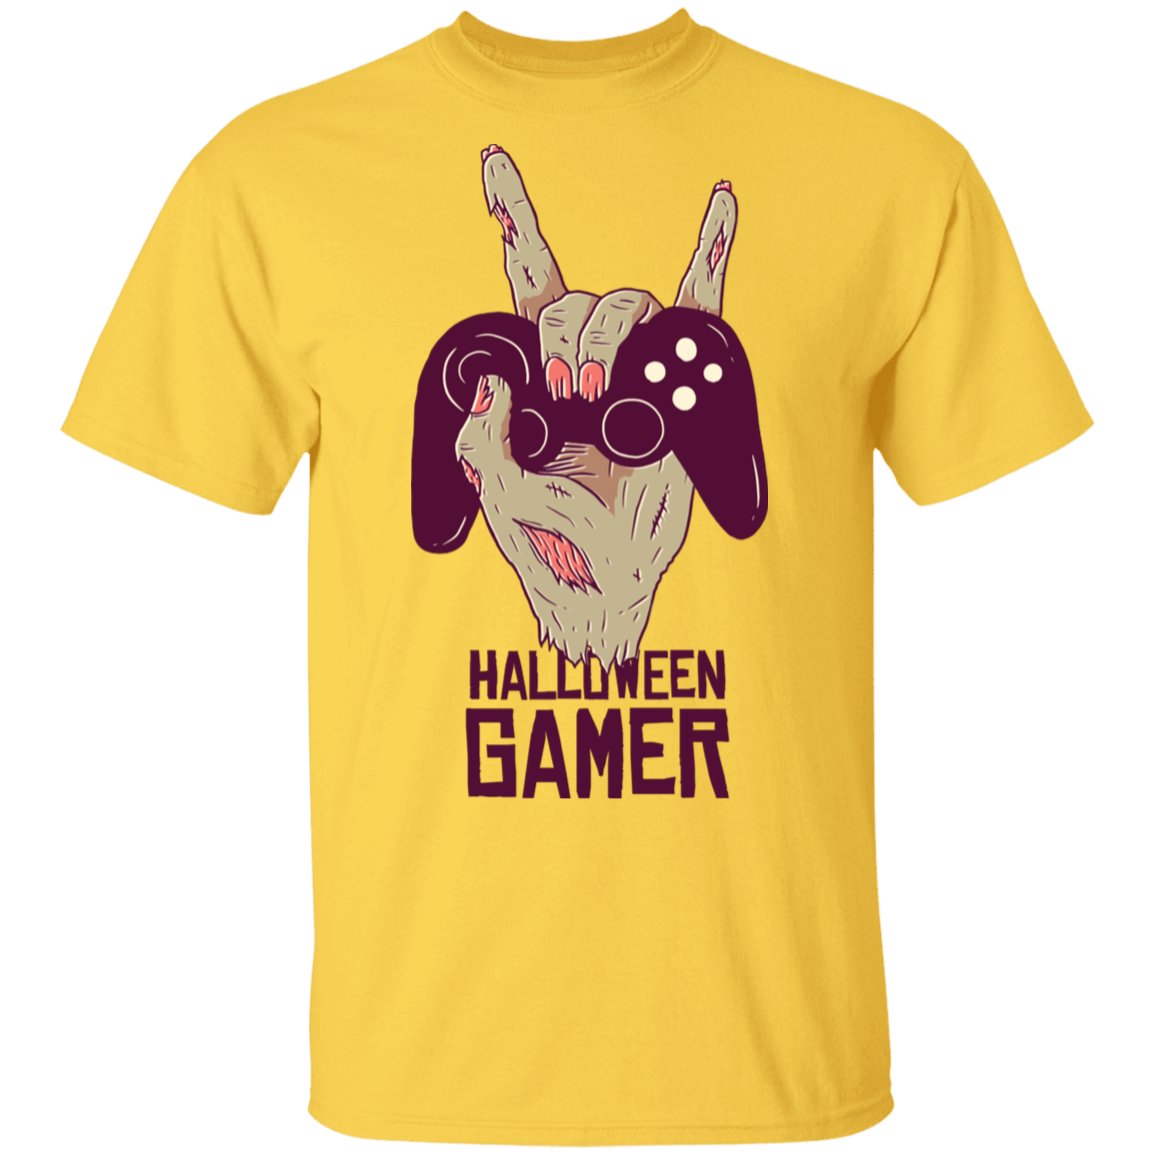 Halloween Gamer T-Shirt